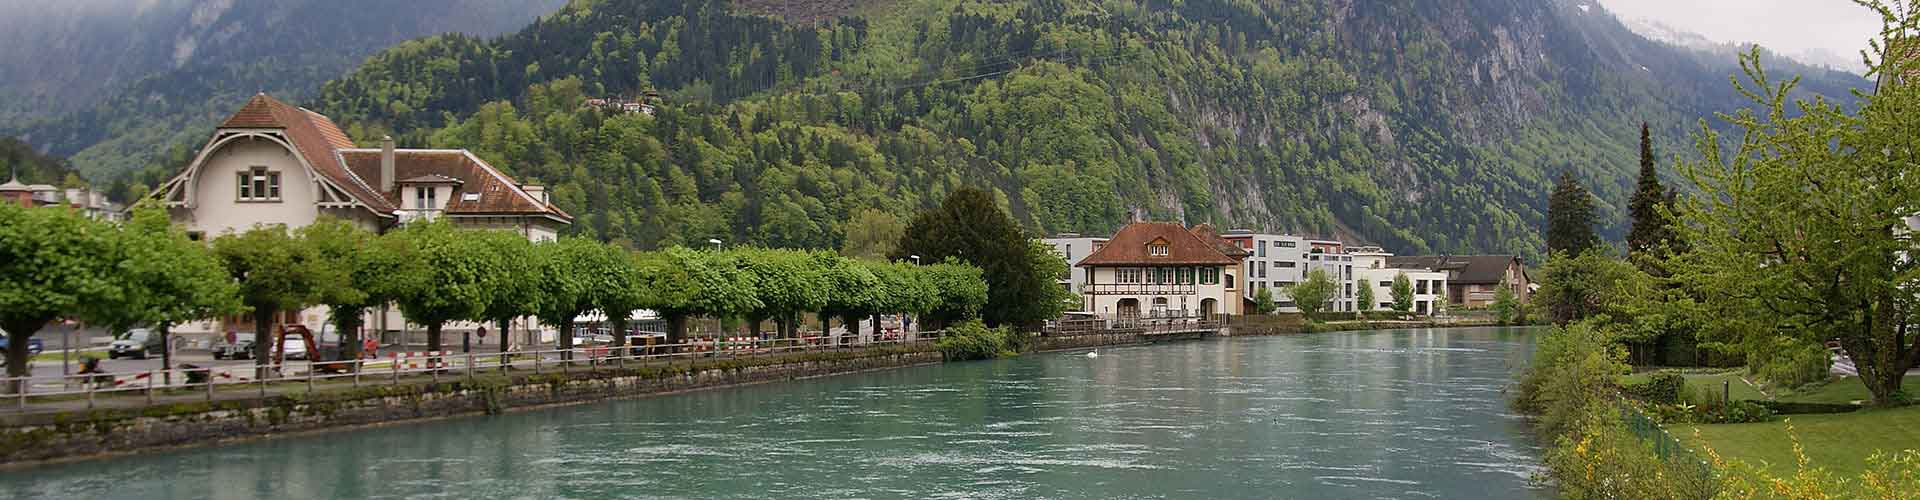 Interlaken – Hostels in Interlaken. Maps for Interlaken, Photos and Reviews for each hostel in Interlaken.